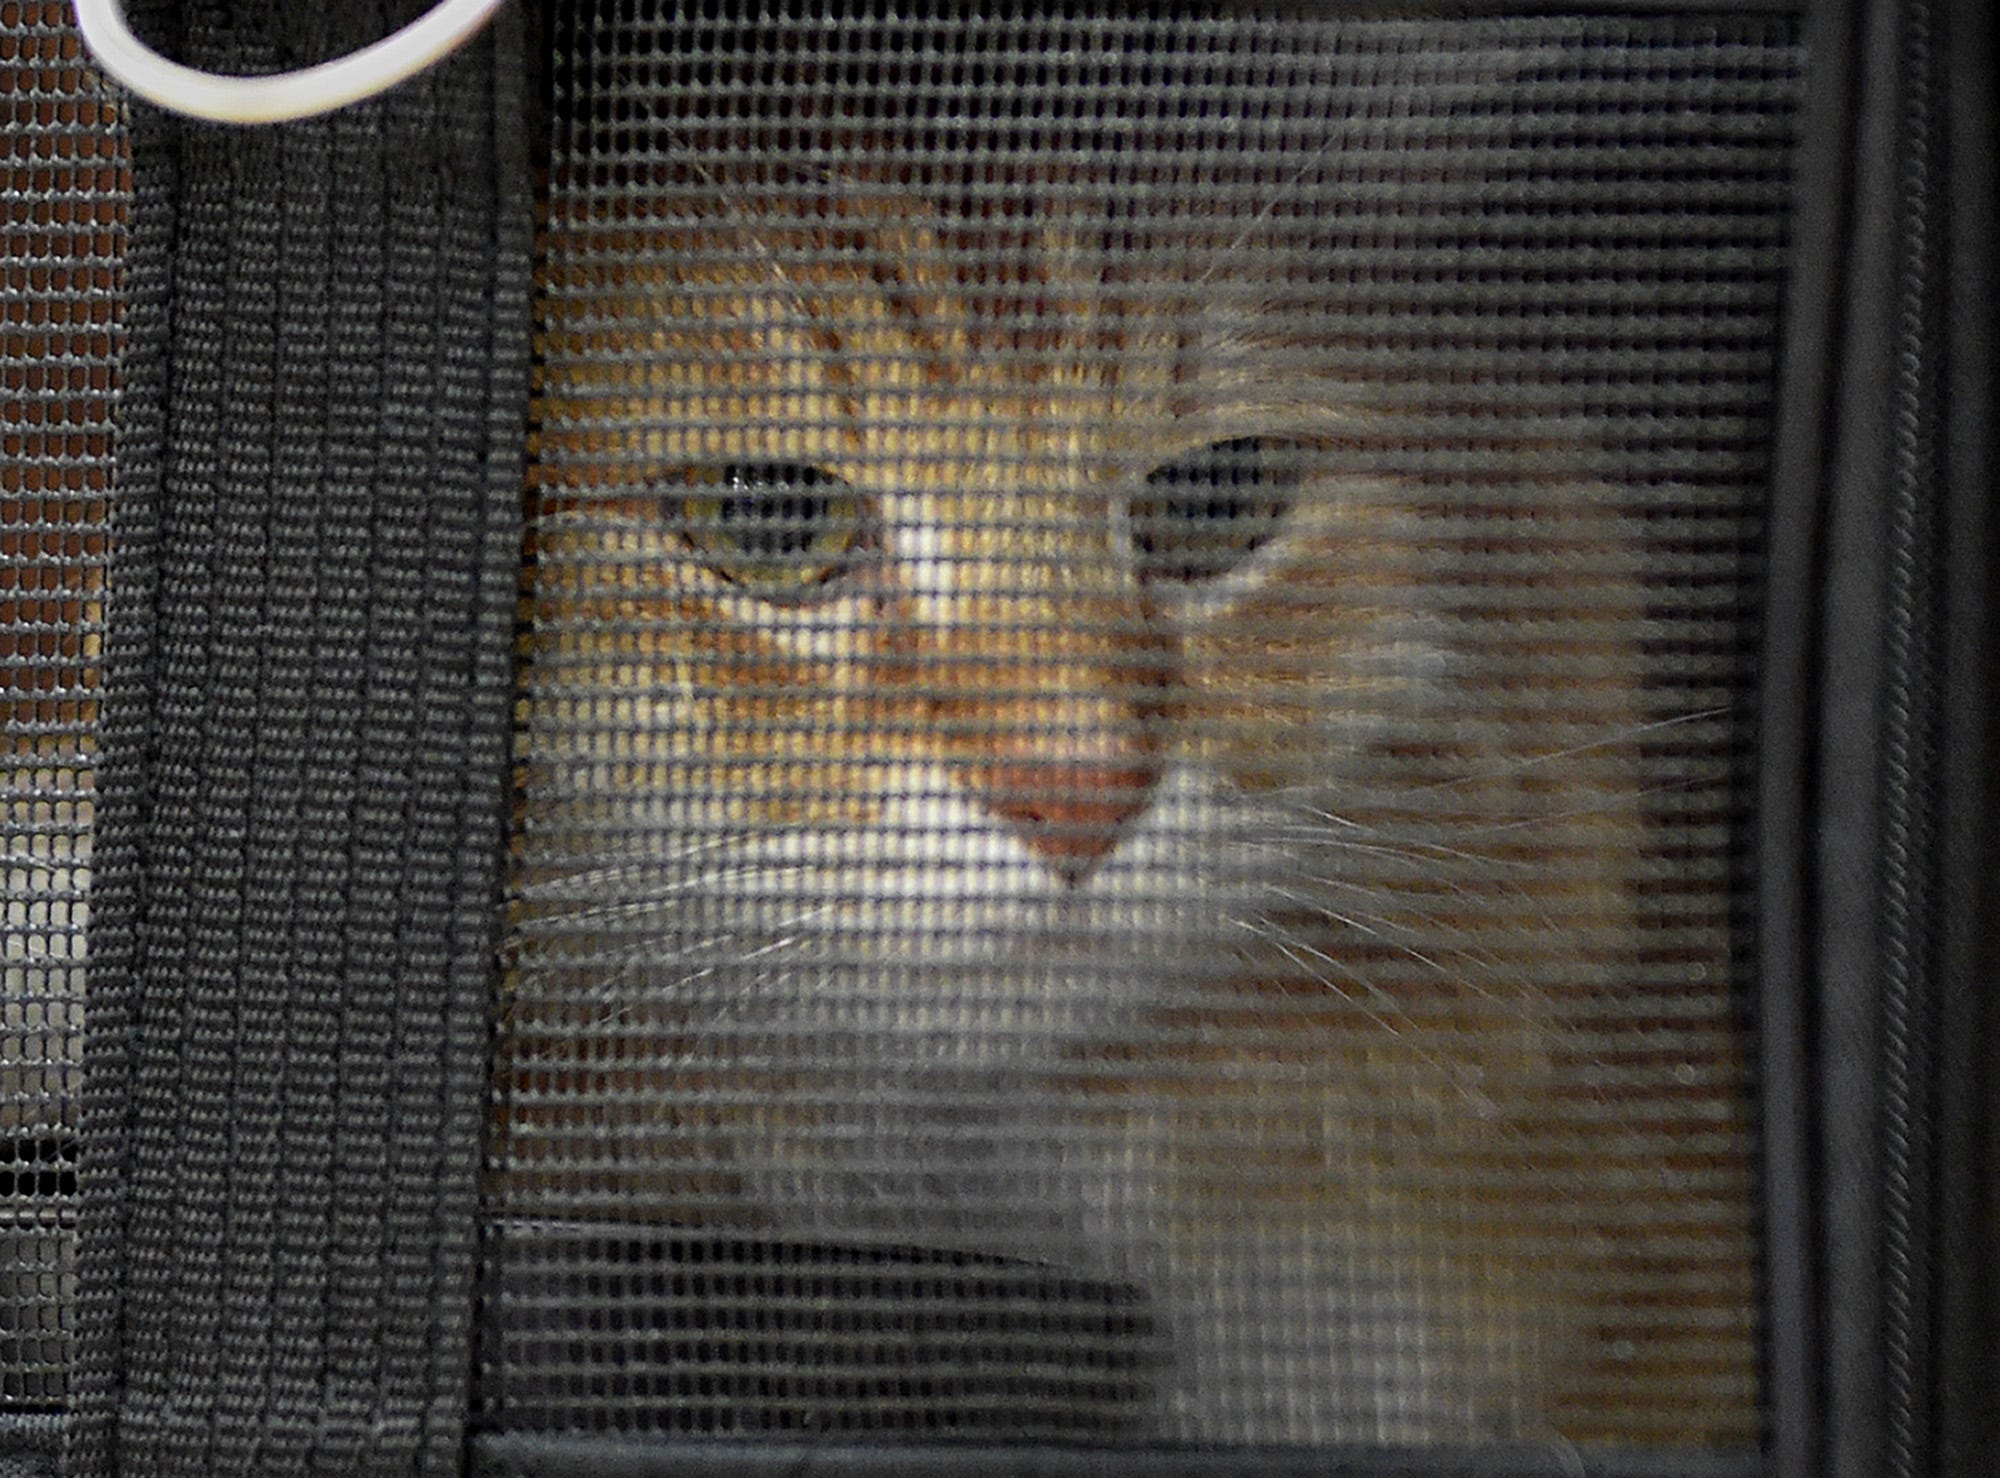 Bobby the cat strayed 900 miles from Montana to Nevada. Now he's going home.